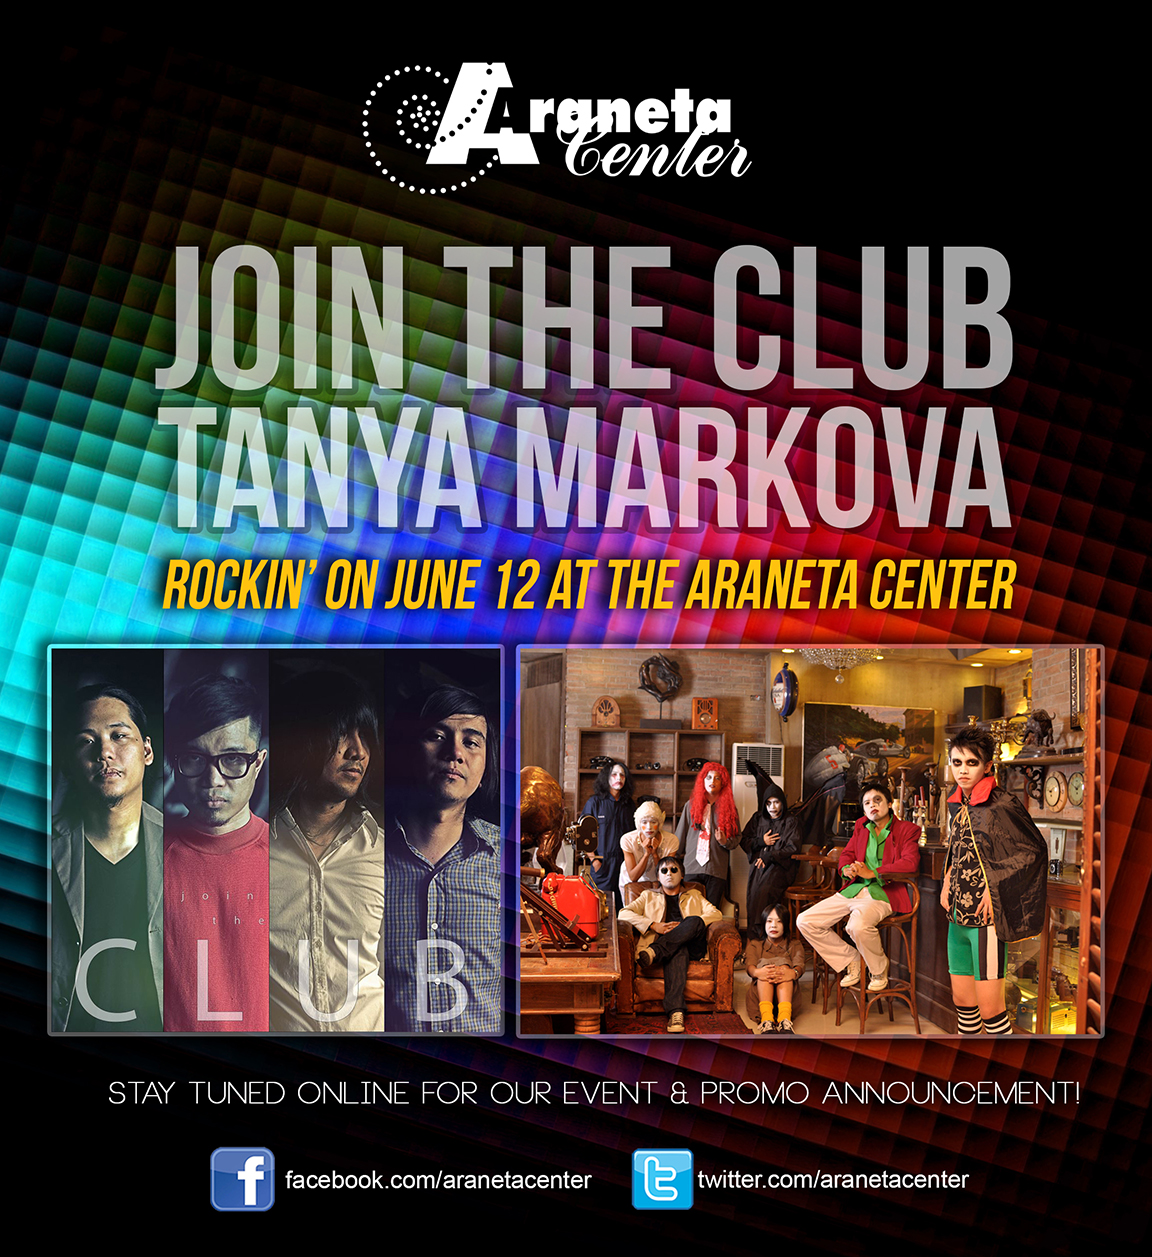 FREEDOM ROCKS! Join The Club and Tanya Markova FREE!!